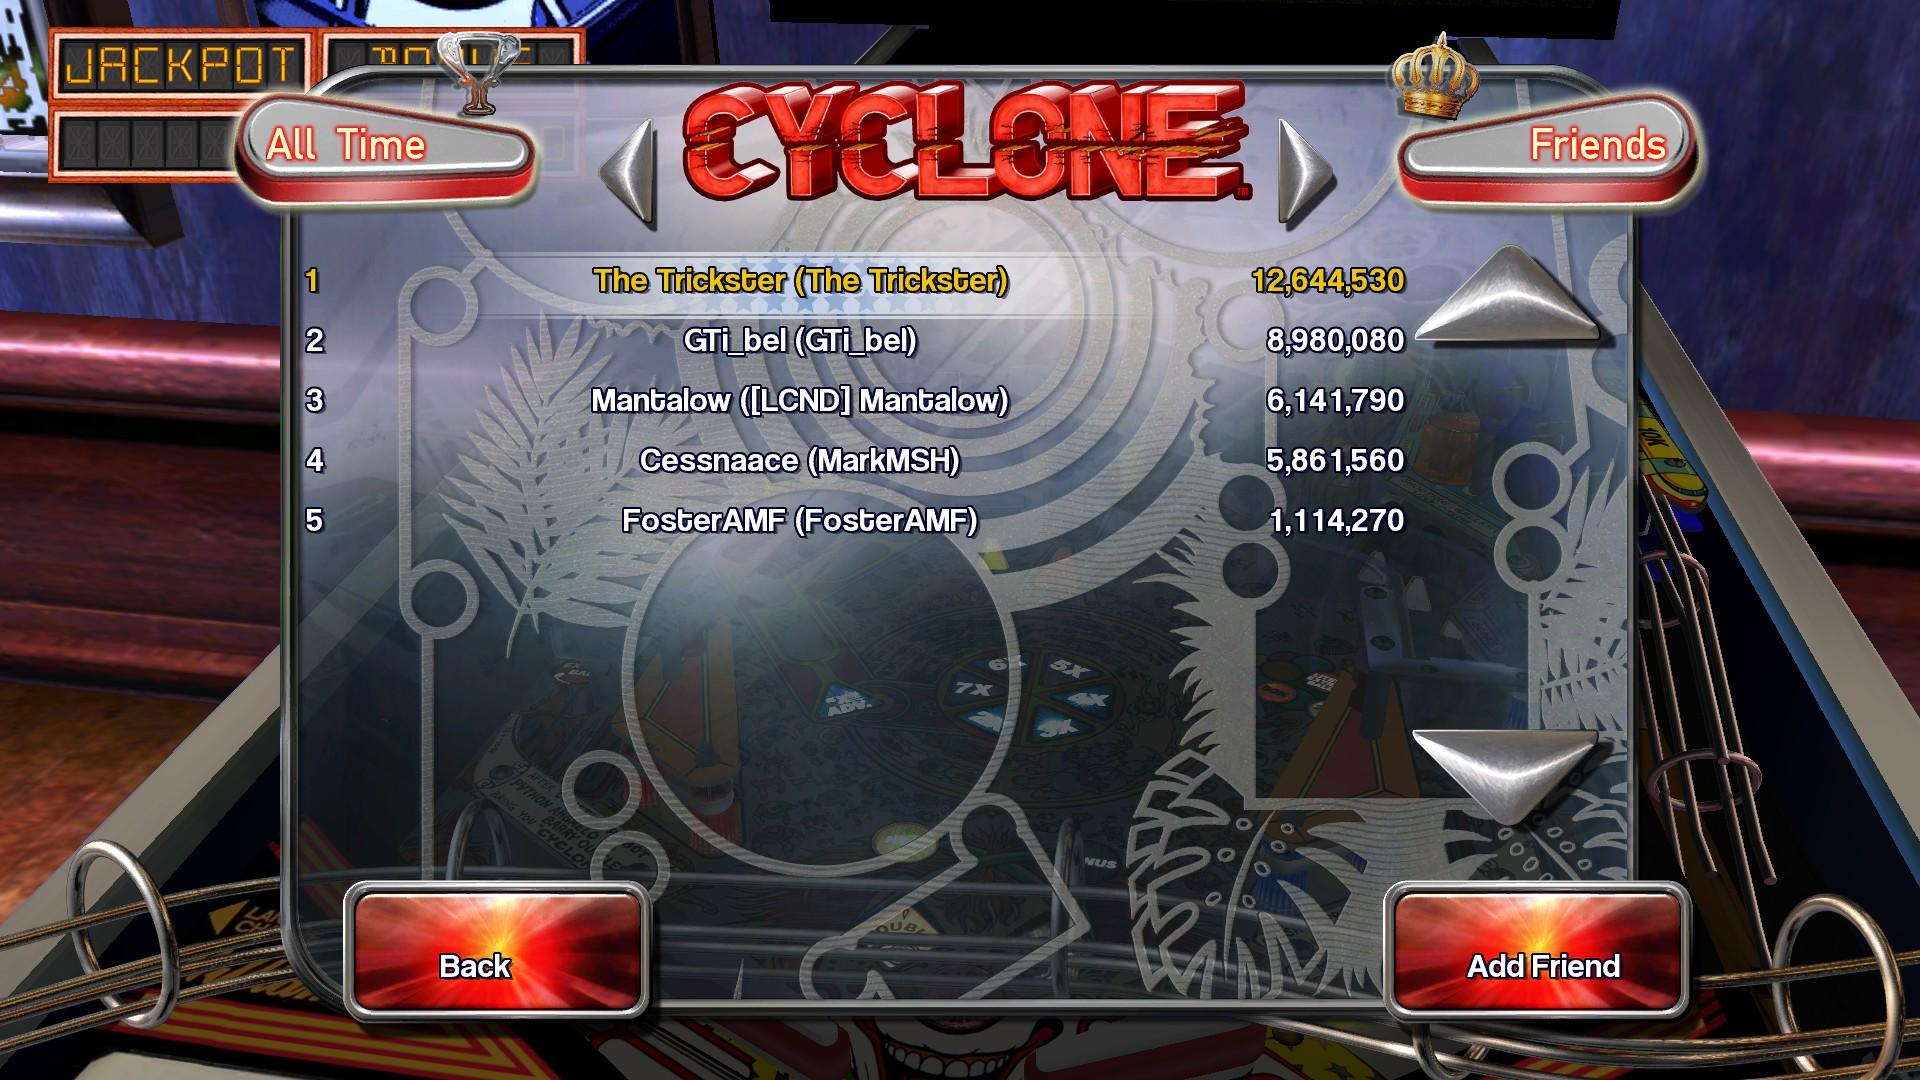 TheTrickster: Pinball Arcade: Cyclone (PC) 12,644,530 points on 2016-03-04 05:05:24